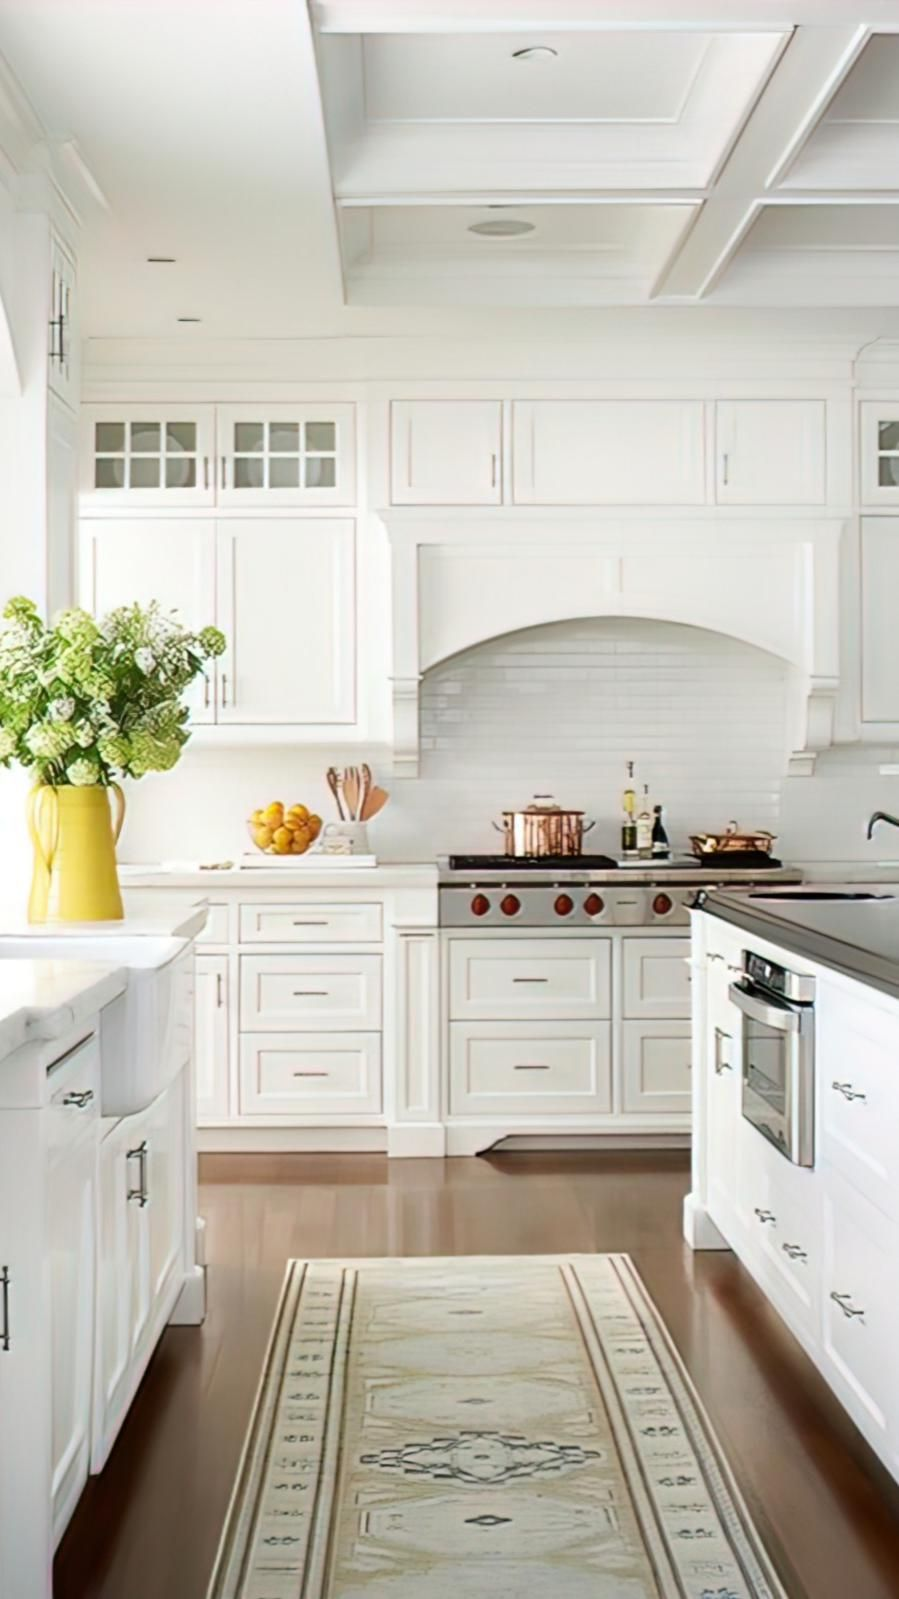 Envision your newly remodeled kitchen with the help of a salesperson at a Kunal Kitchens dealership